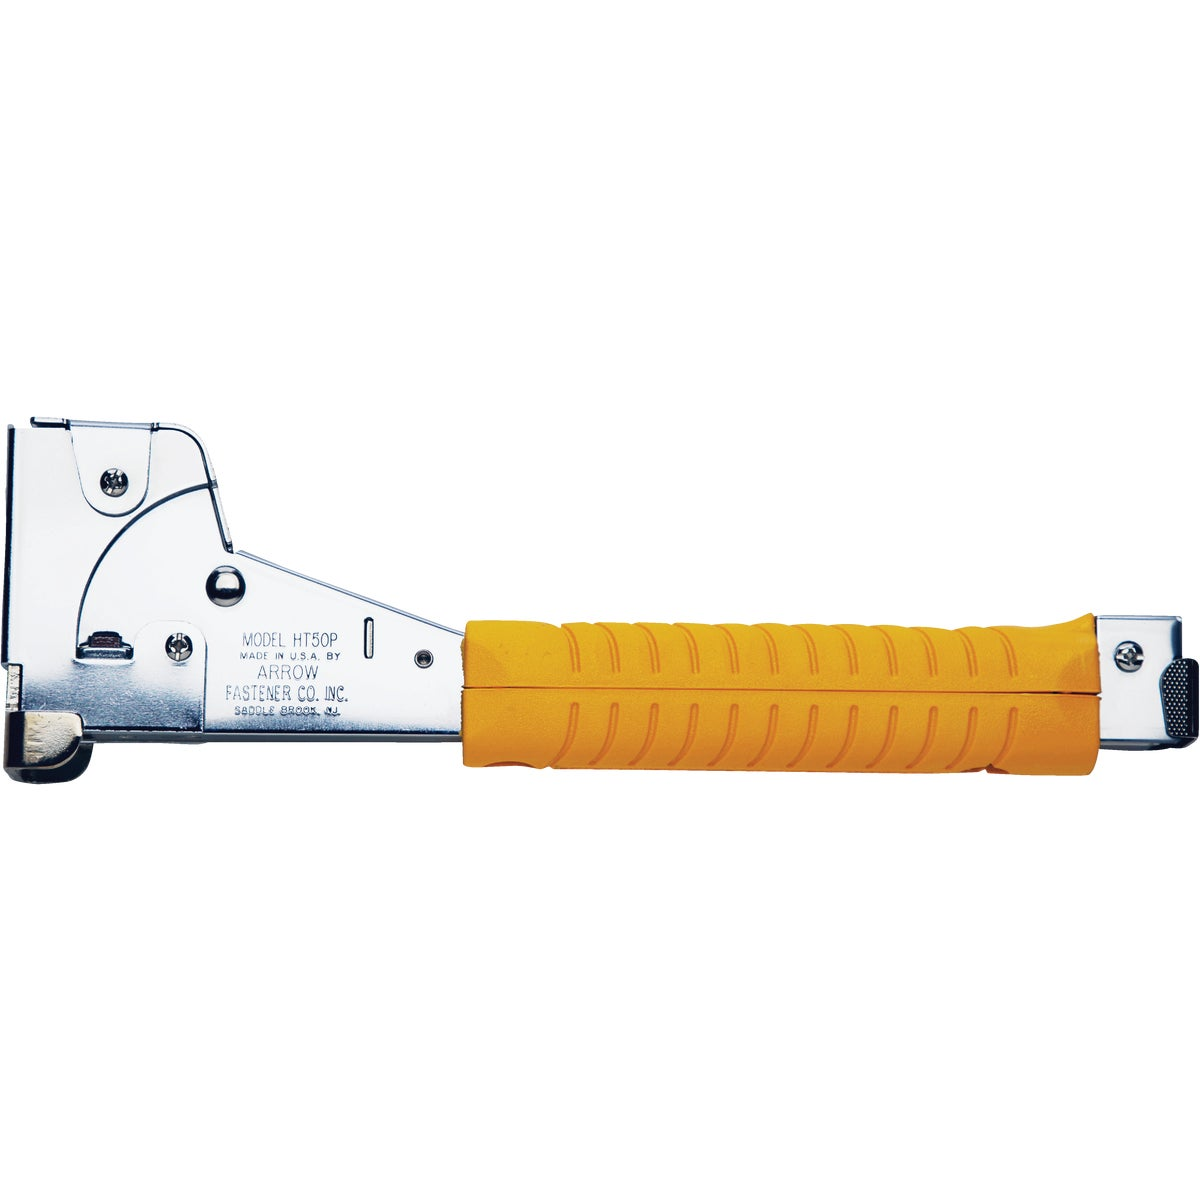 HAMMER TACKER - HT50DS by Arrow Fastener Co